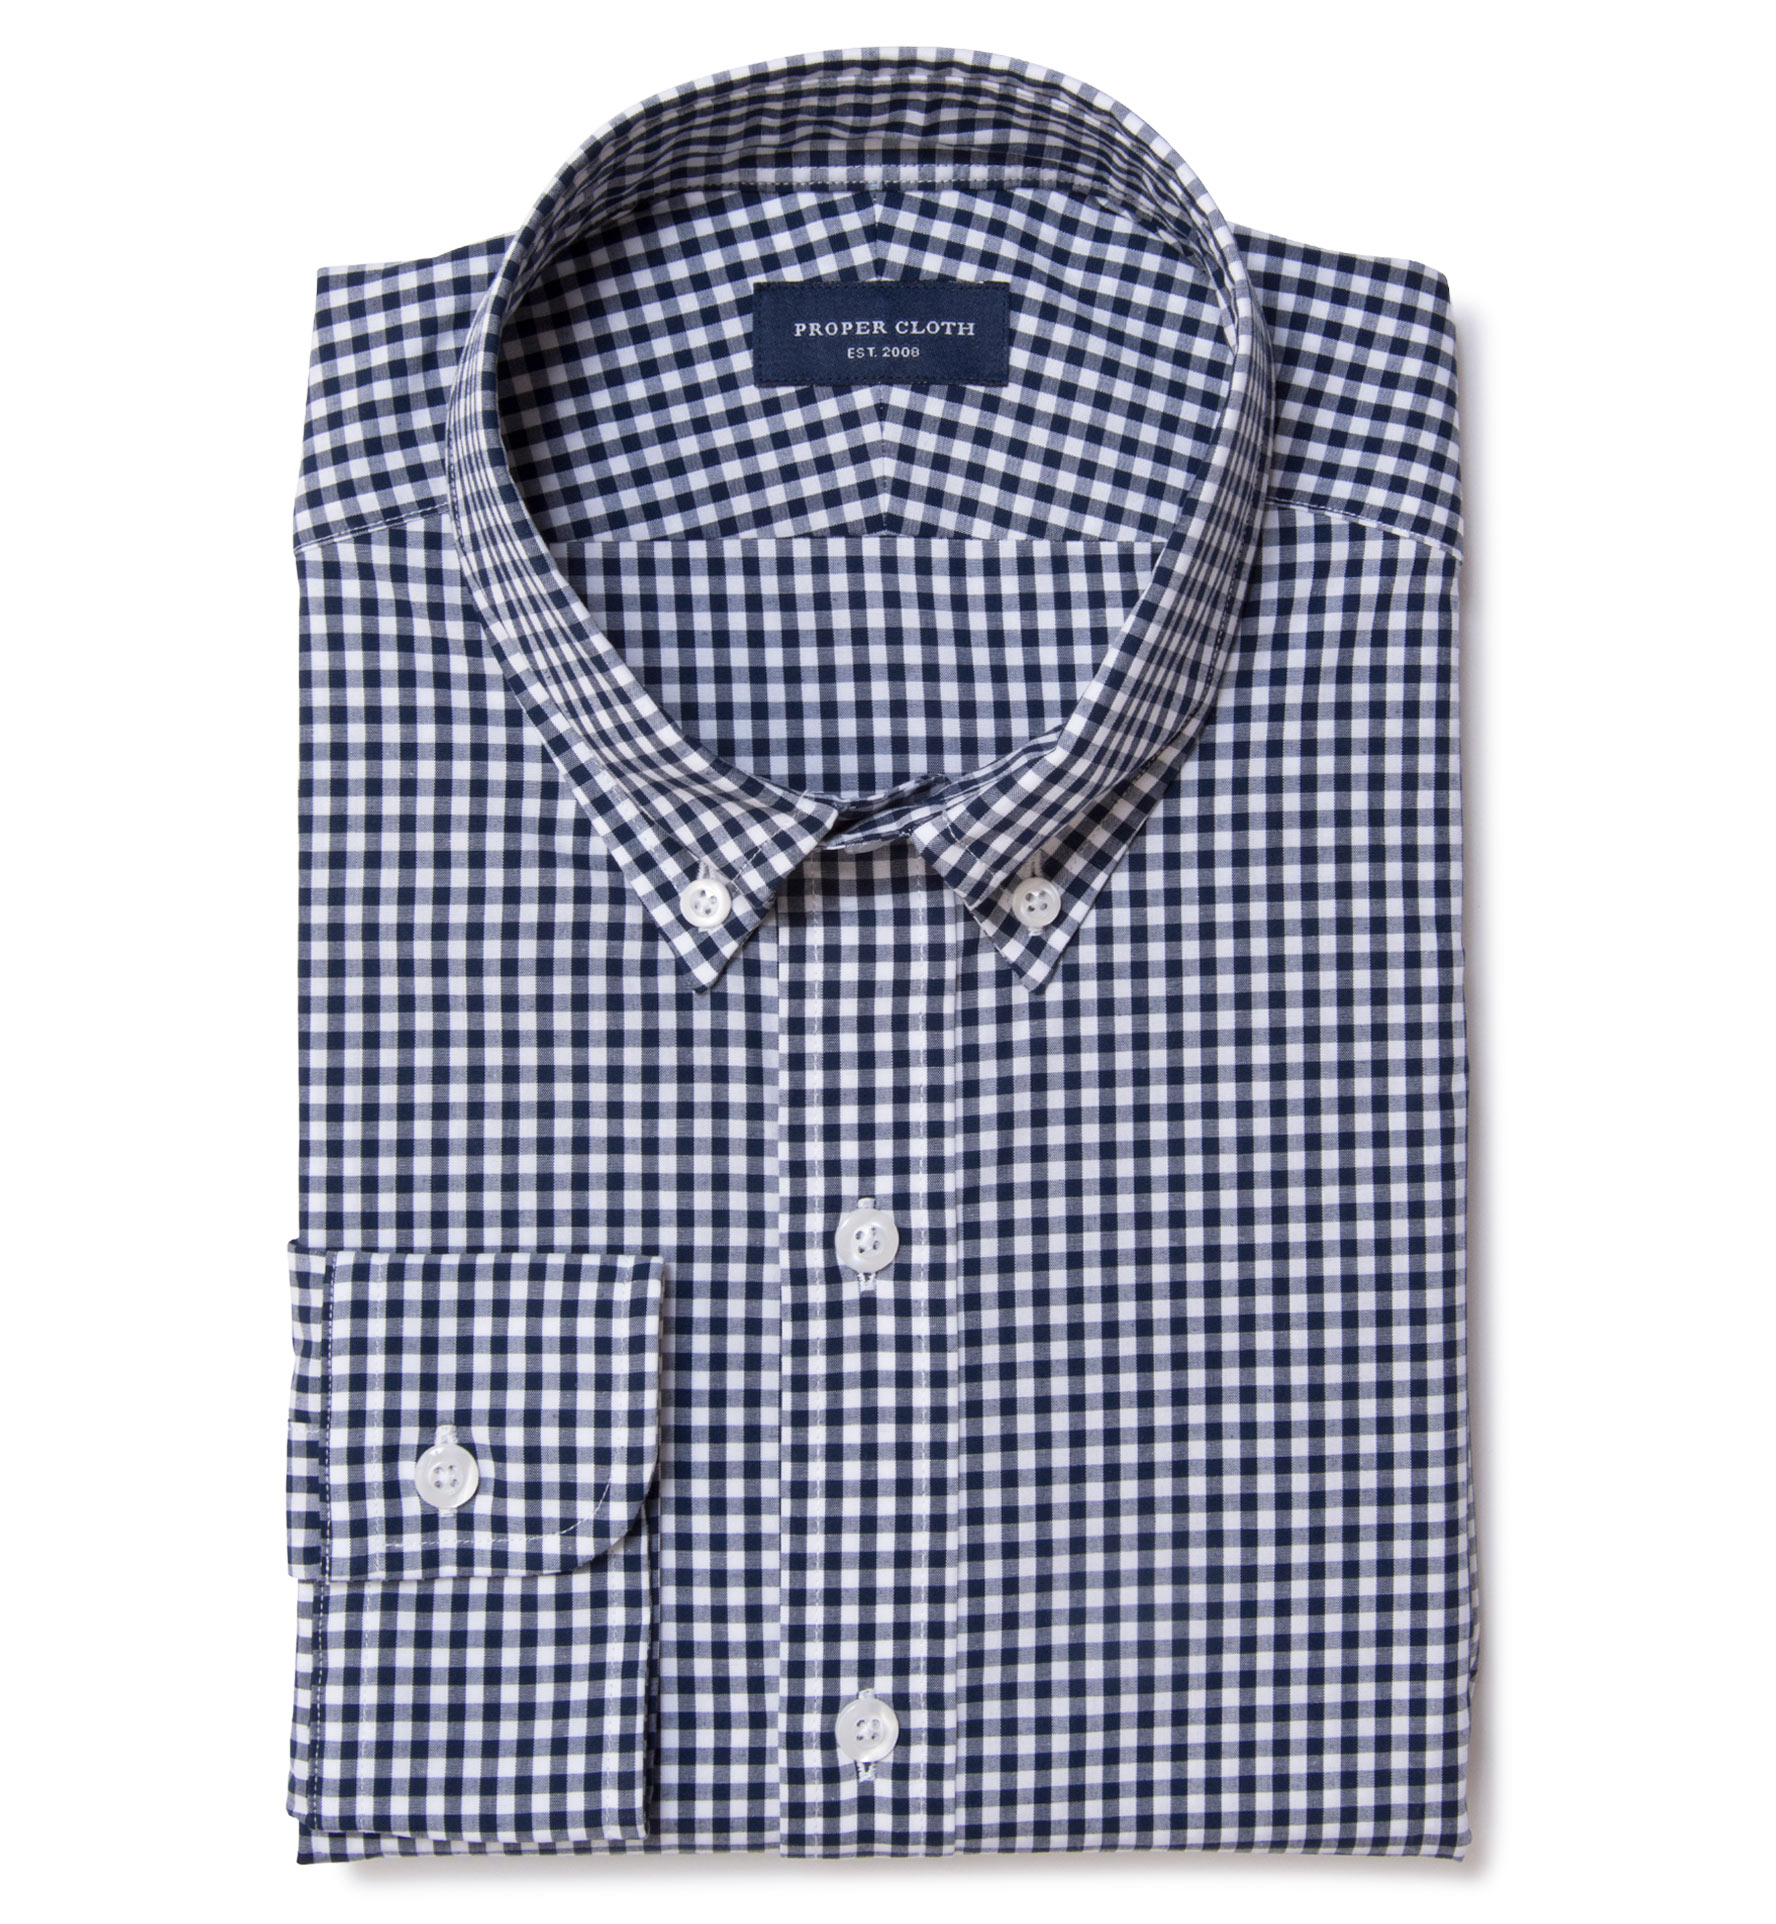 Medium Navy Gingham Custom Made Shirt By Proper Cloth